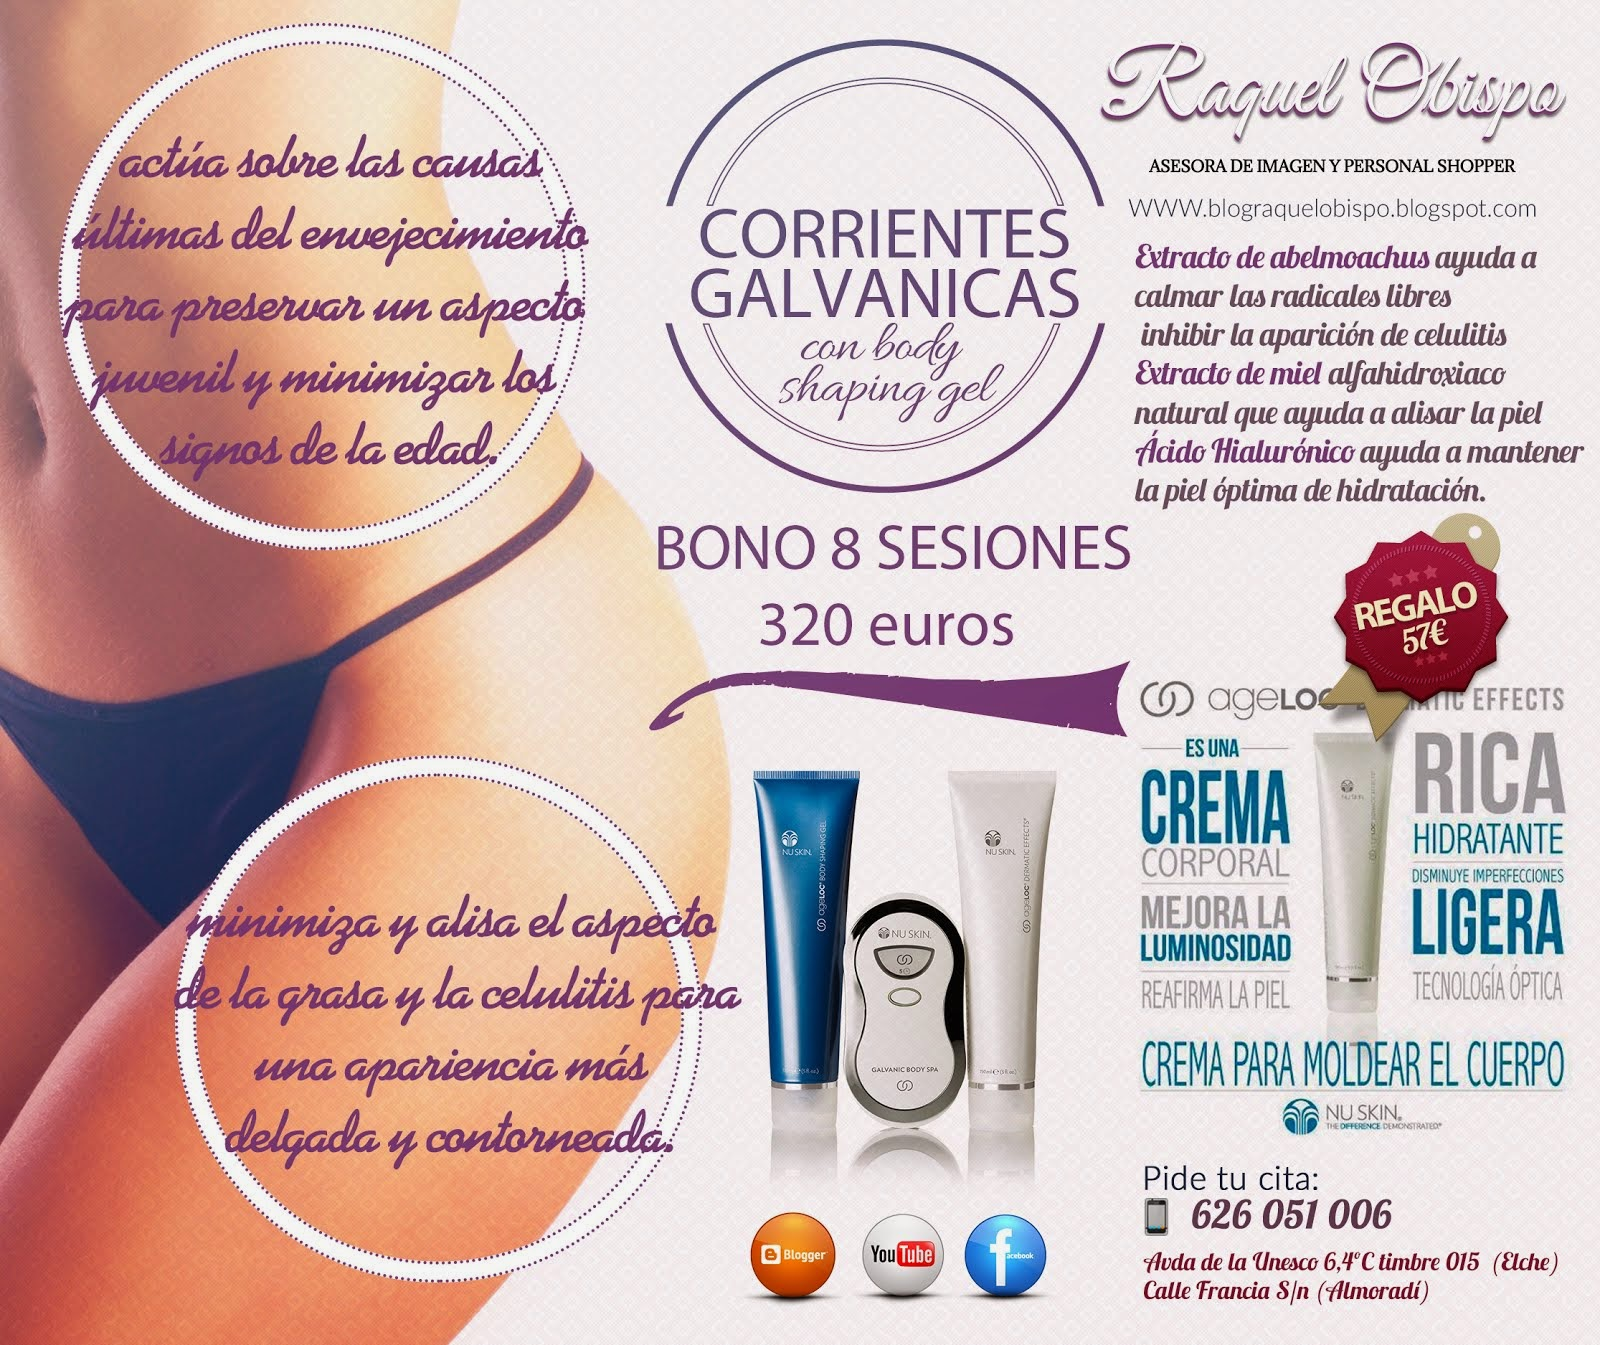 Corrientes Galvanicas con Body shaping gel